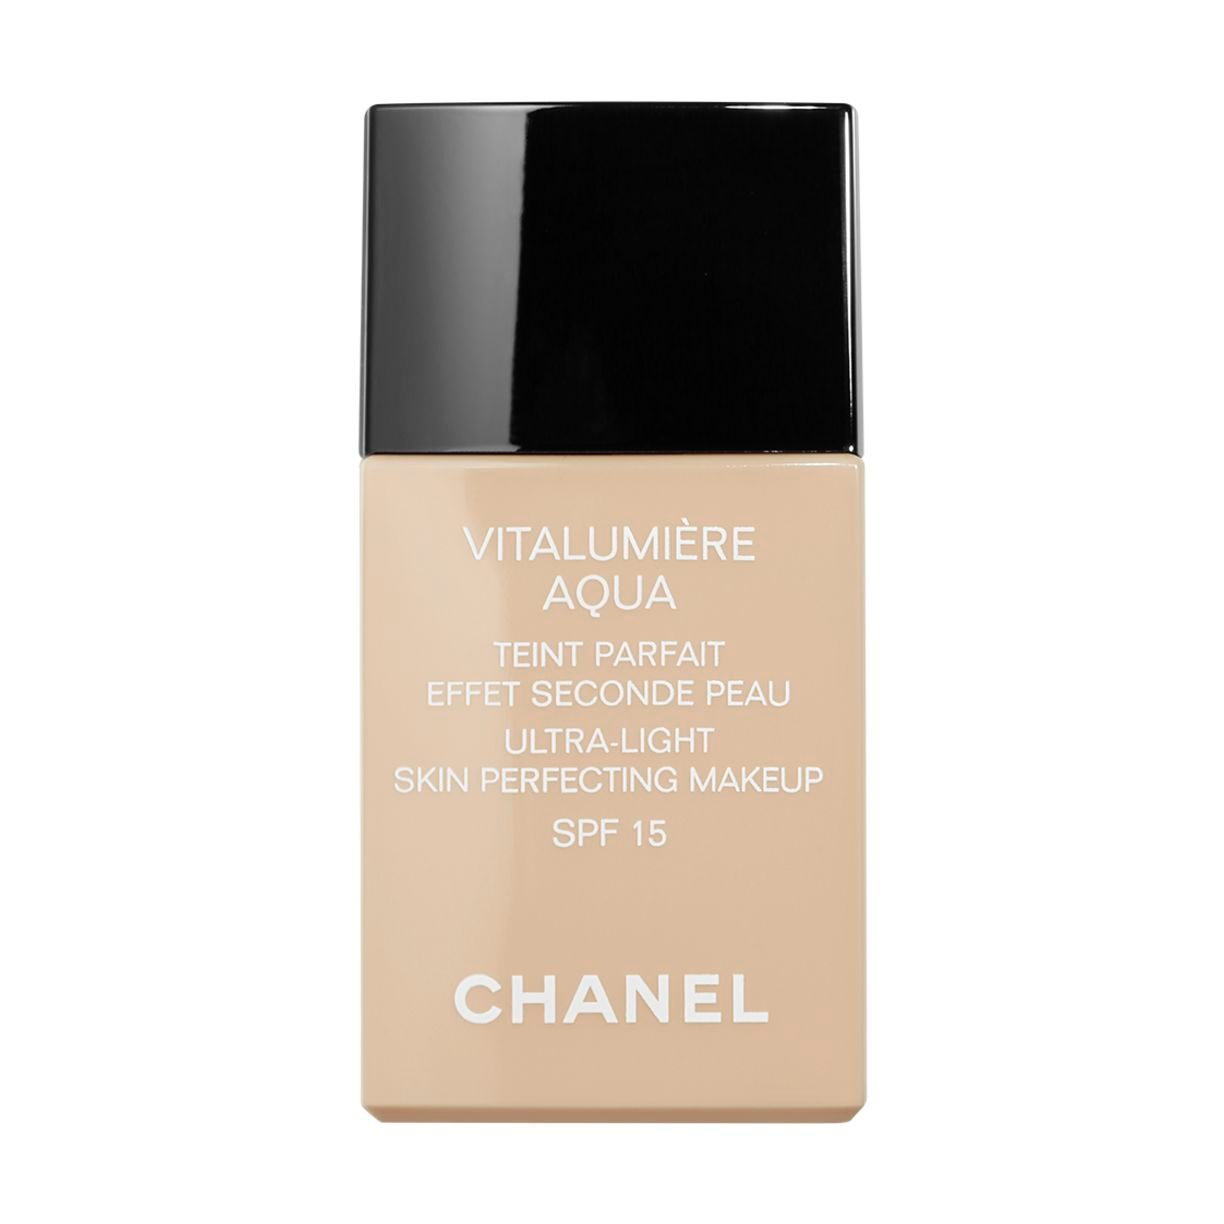 VITALUMIÈRE AQUA ULTRA-LIGHT SKIN PERFECTING MAKEUP SPF 15 10 - BEIGE